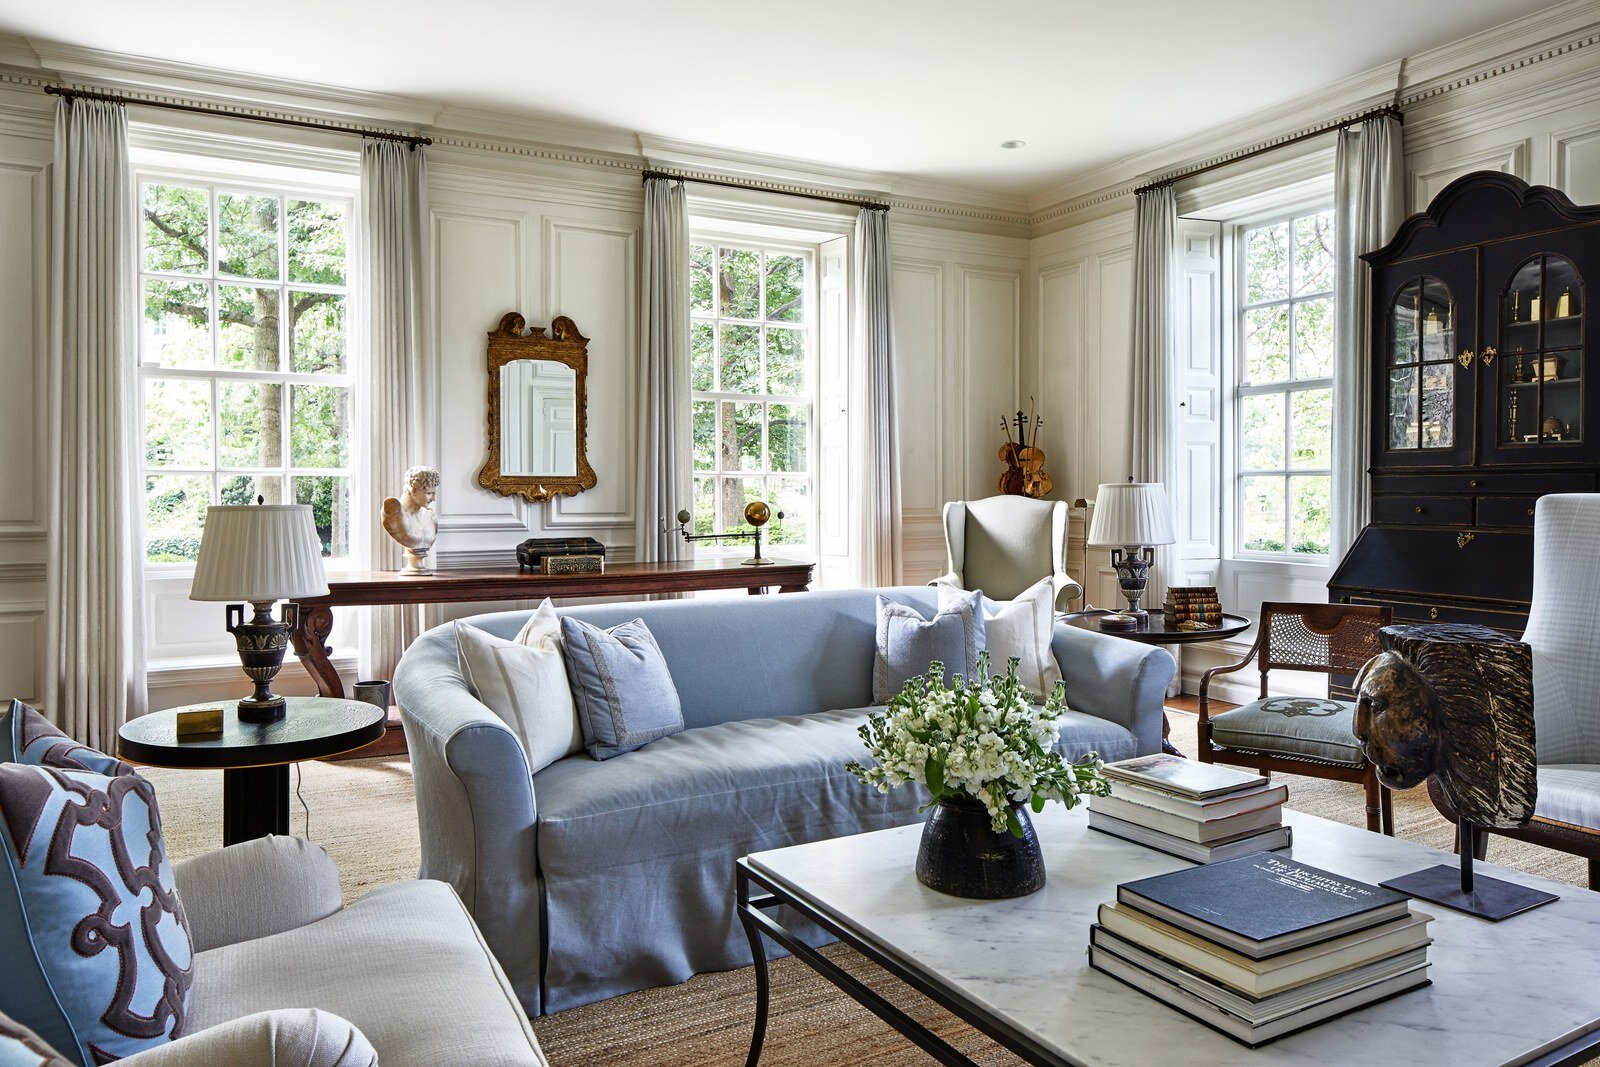 Decorating firm Simon-Wallace designed the living room, but many of the pieces are antiques that have been in the family for years.